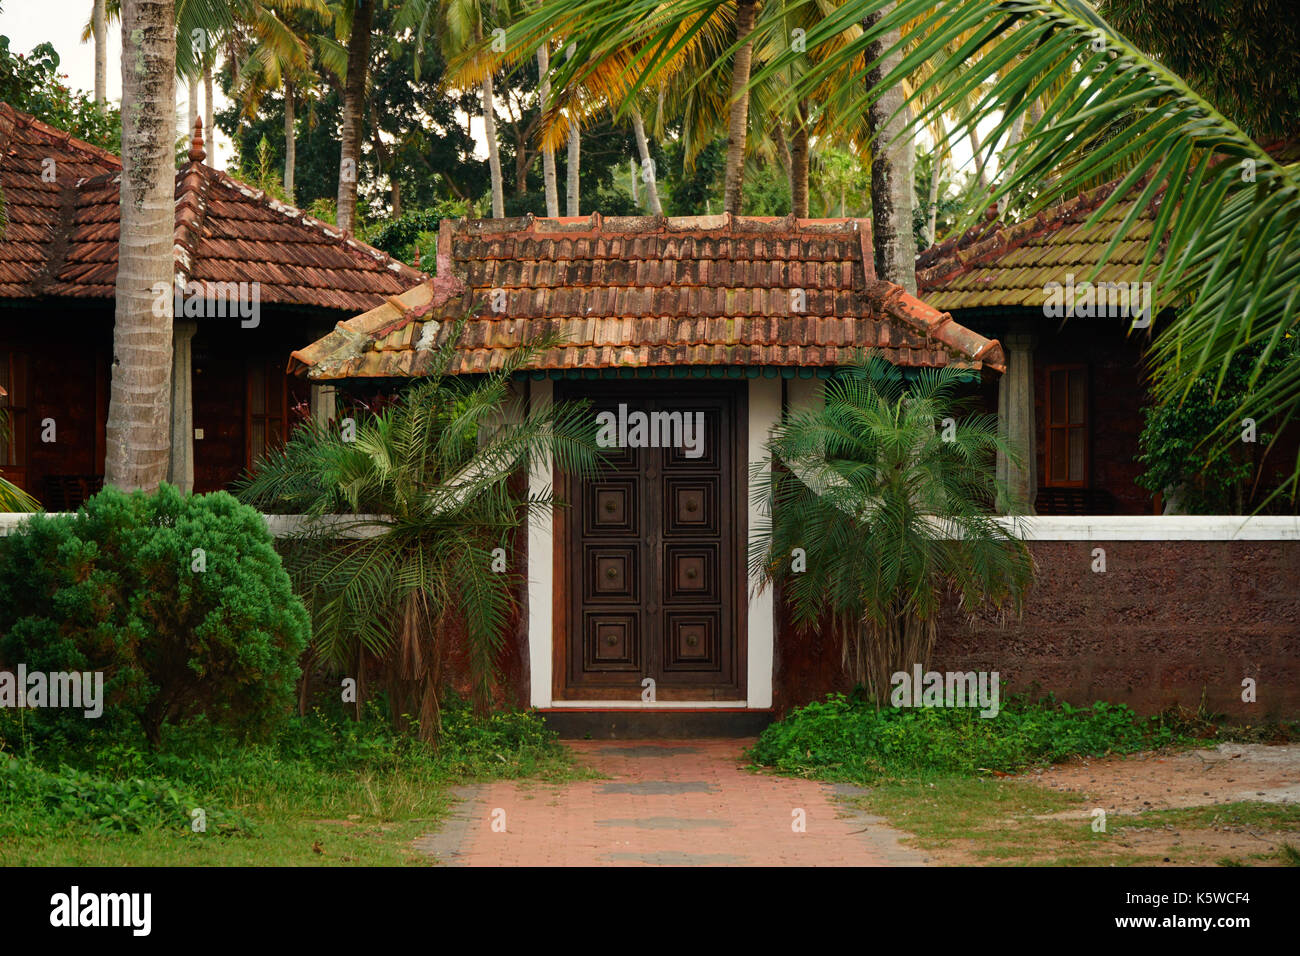 Old house kerala stock photos old house kerala stock for Kerala model house photos with details